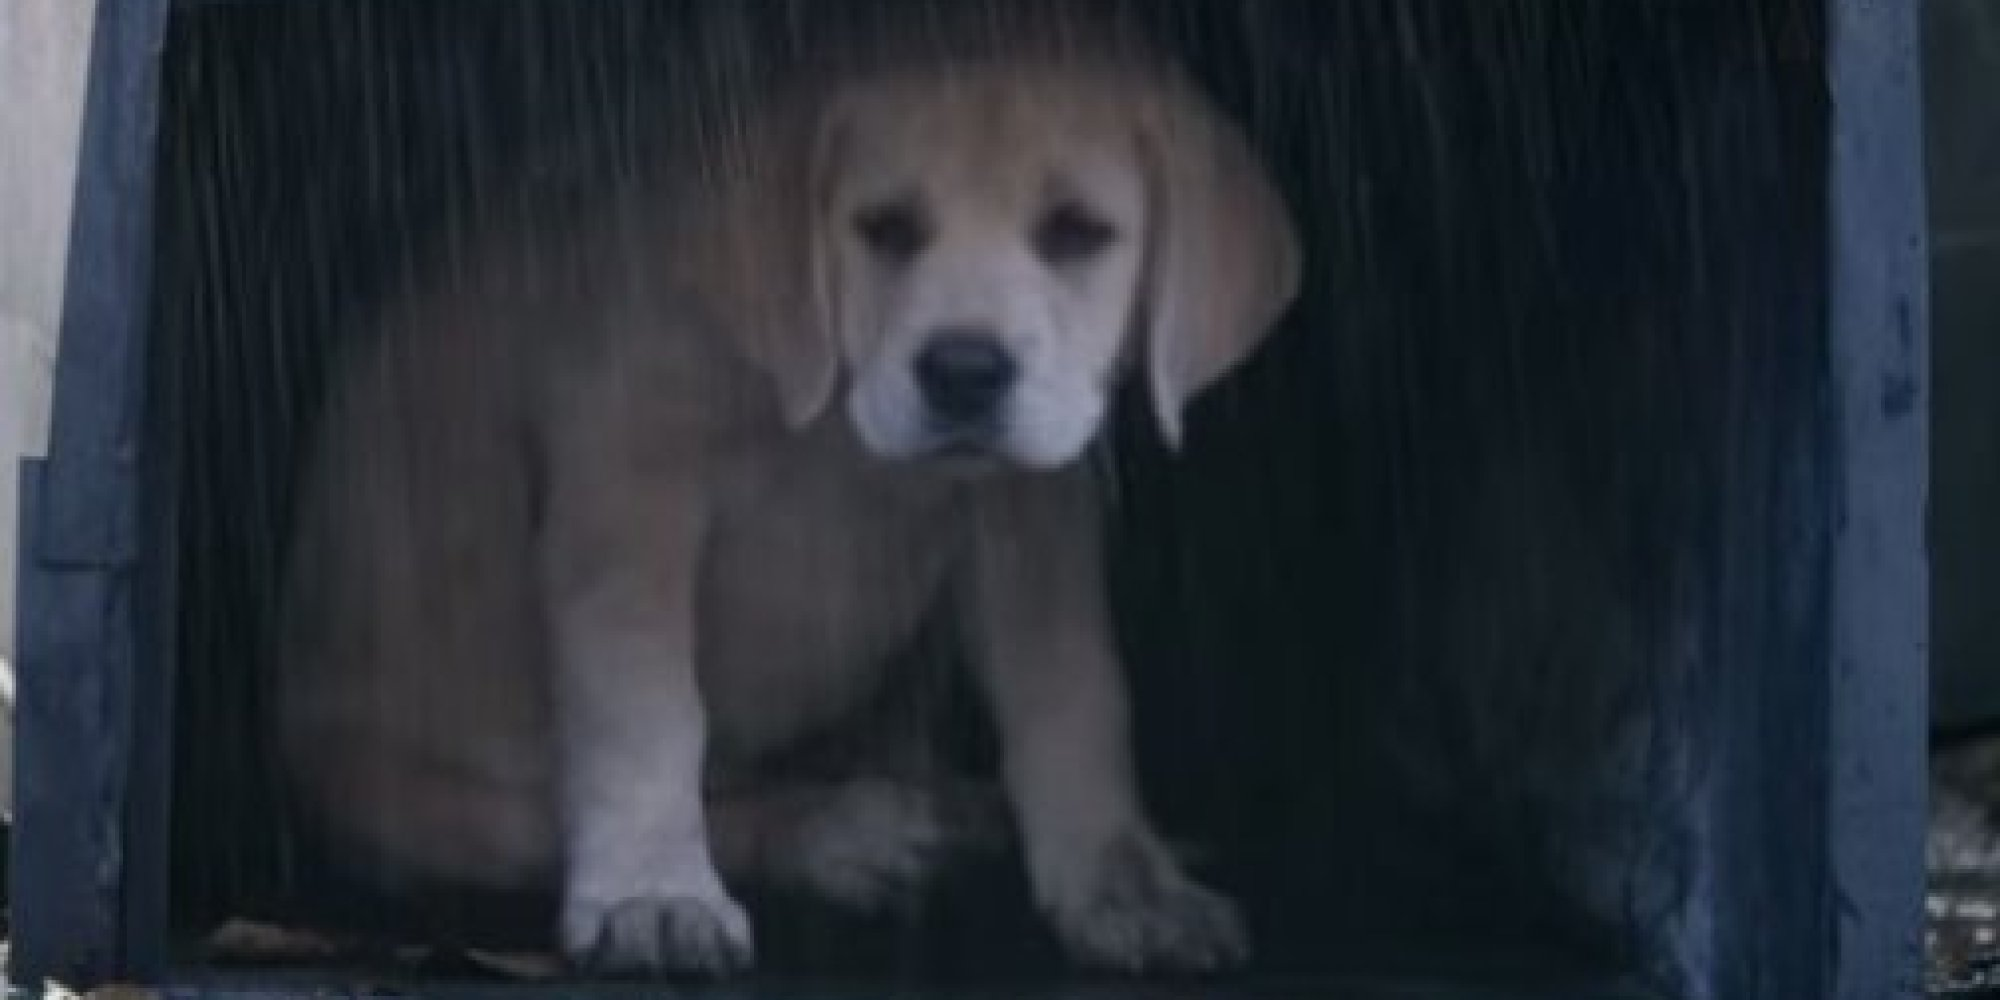 Budweisers super bowl 2015 puppy commercial is too adorable to budweisers super bowl 2015 puppy commercial is too adorable to handle huffpost mozeypictures Choice Image